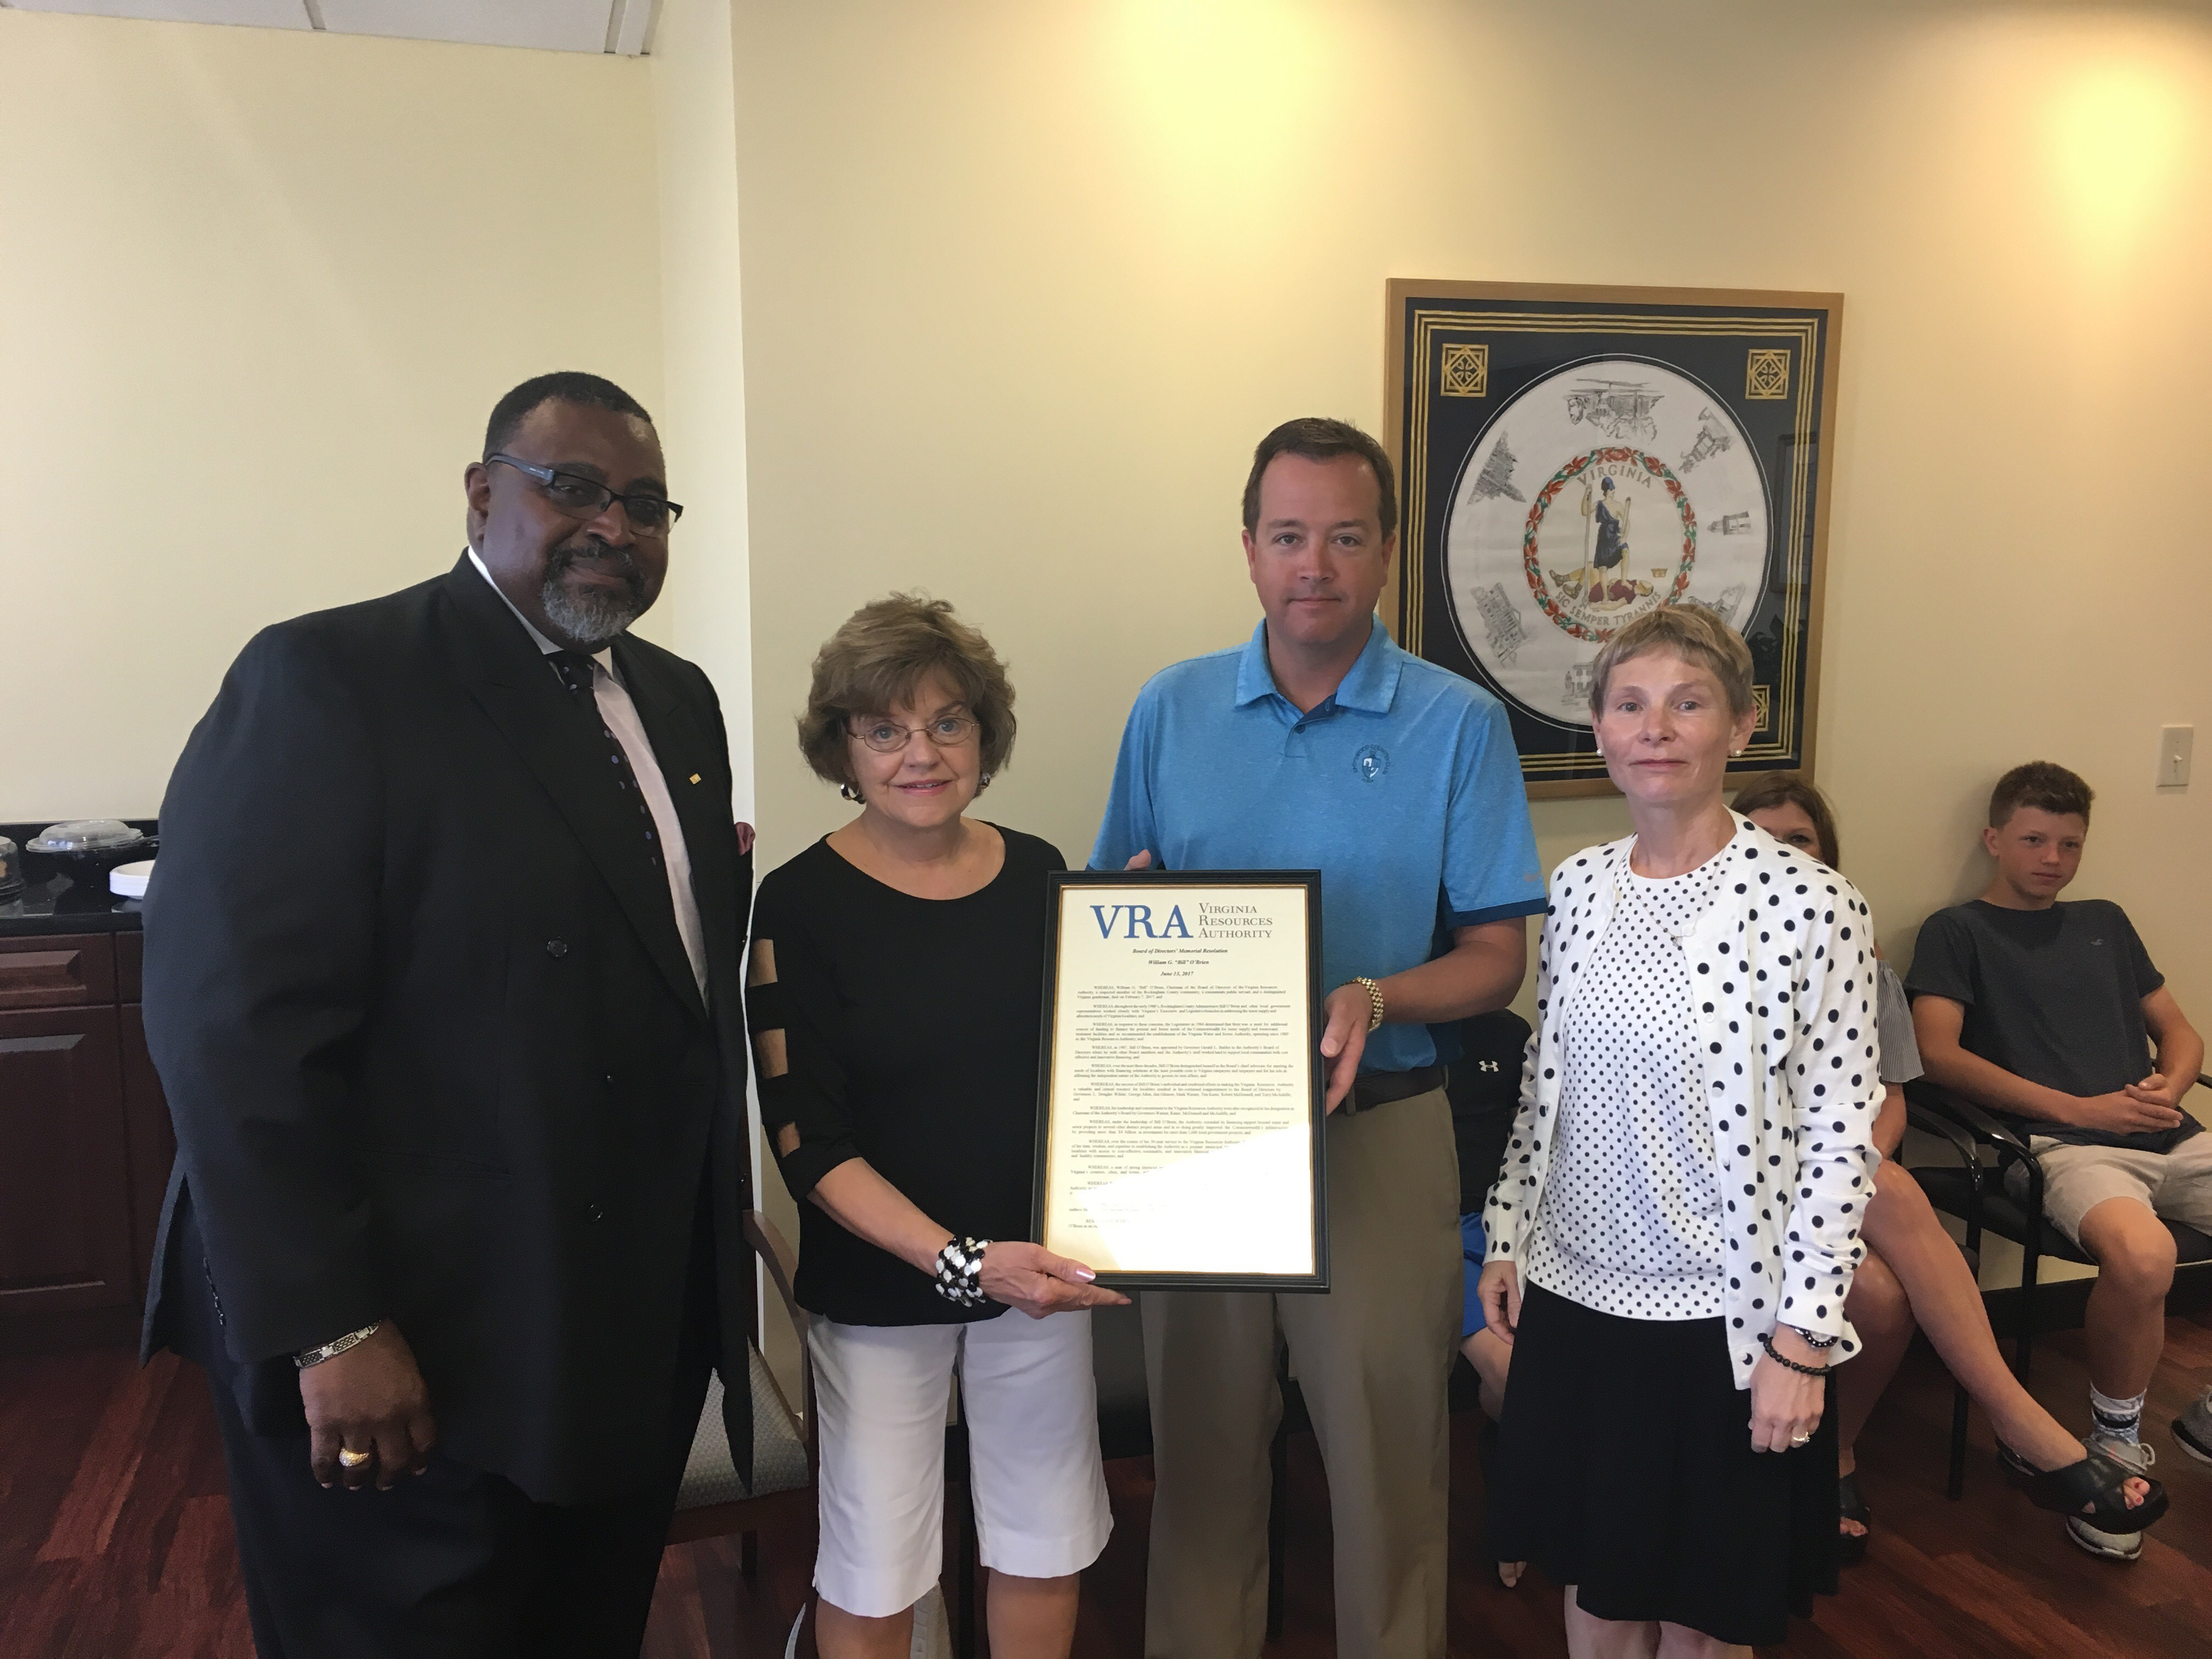 VRA Board Vice Chairman Thomas Hasty and VRA Executive Director Stephanie Hamlett present Mr. O'Brien's wife Jeanne and son Kyle with the VRA Resolution honoring his service to the Commonwealth.